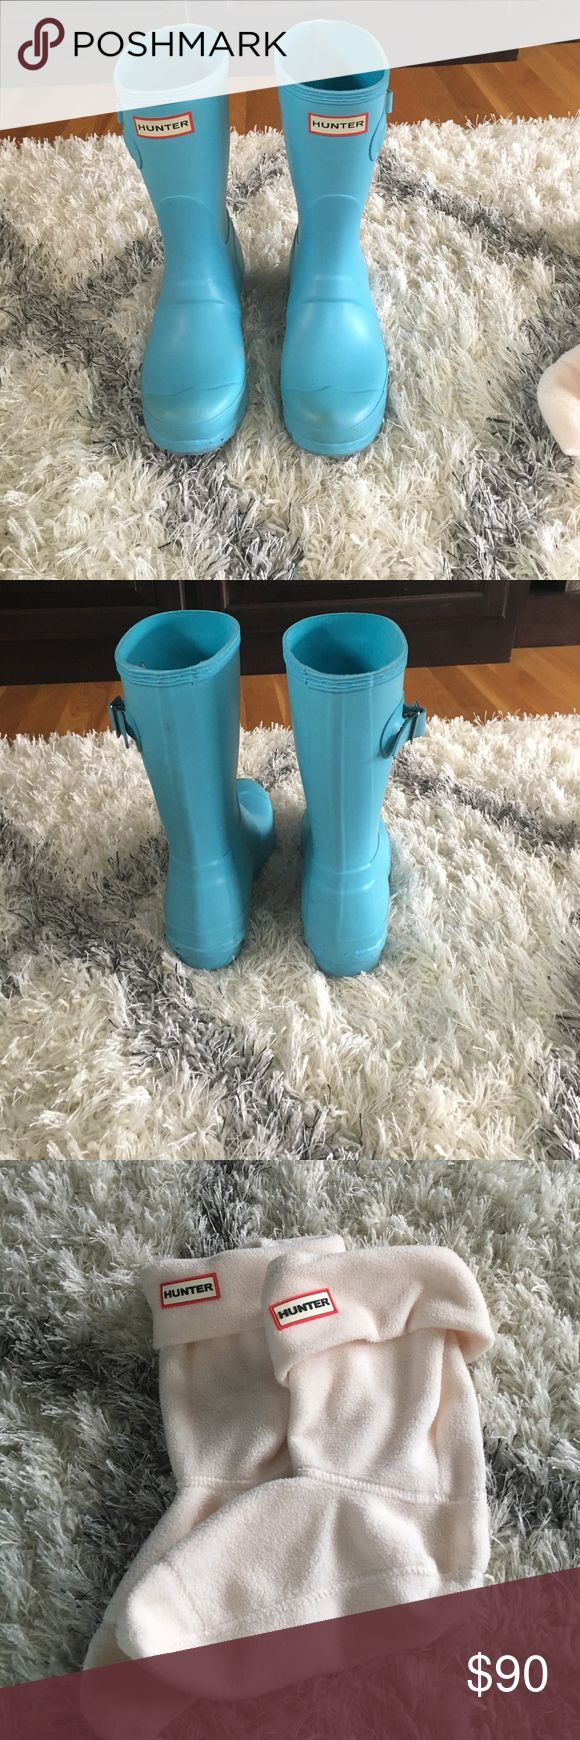 Hunter Boots with FREE Hunter Welly Socks Short Blue Hunter Boots with FREE Hunter Welly Socks! Excellent Condition! Hunter Boots Shoes Winter & Rain Boots